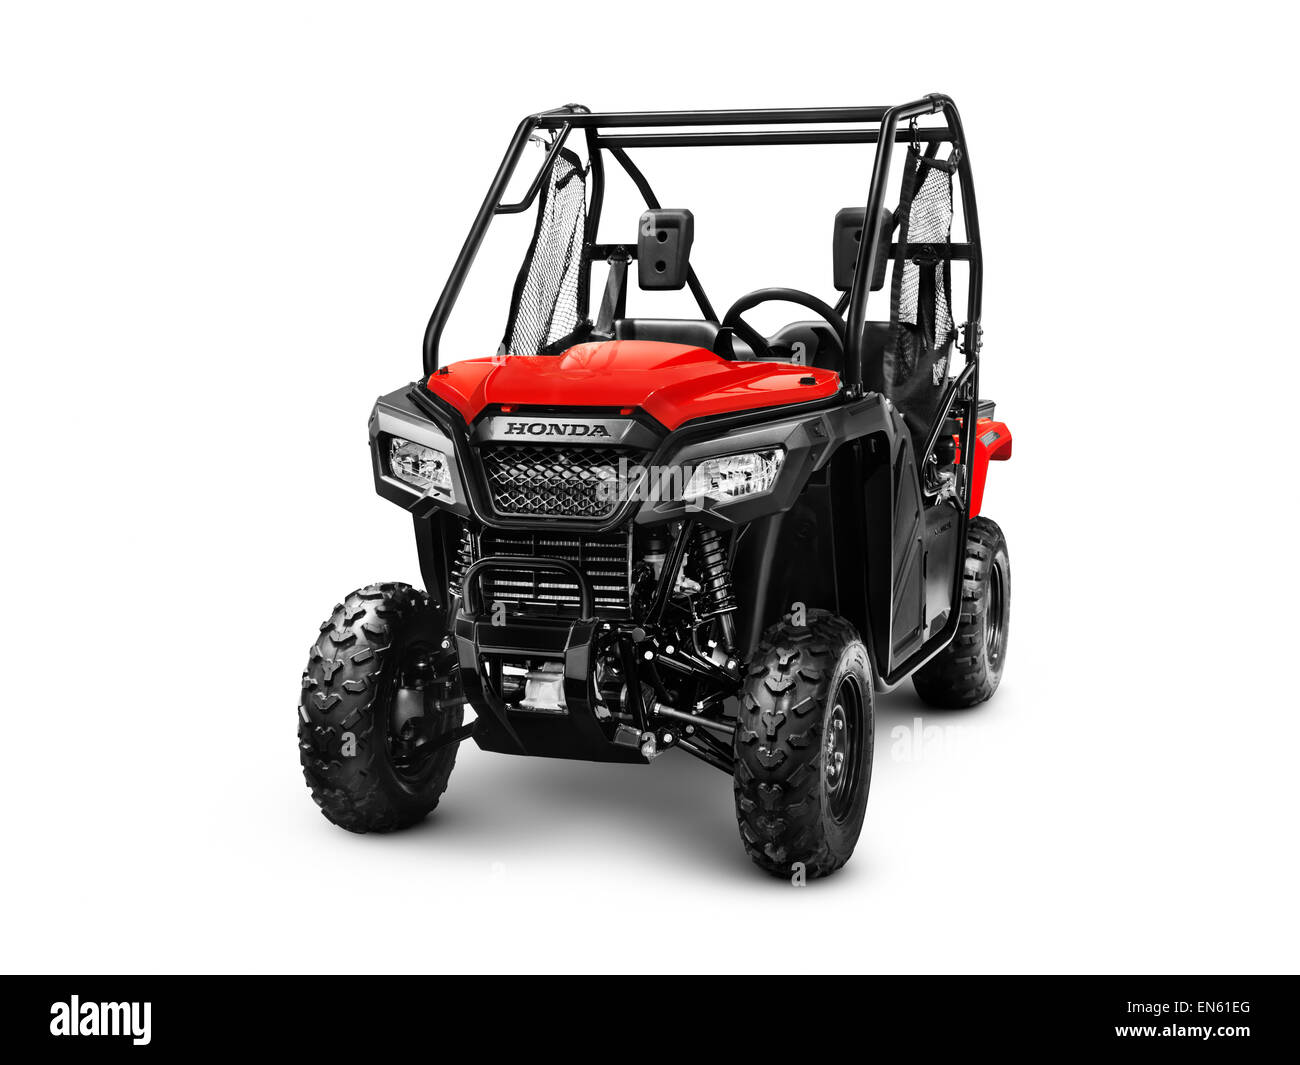 2015 Honda Pioneer 500 SxS ATV quad isolated on white background with clipping path - Stock Image